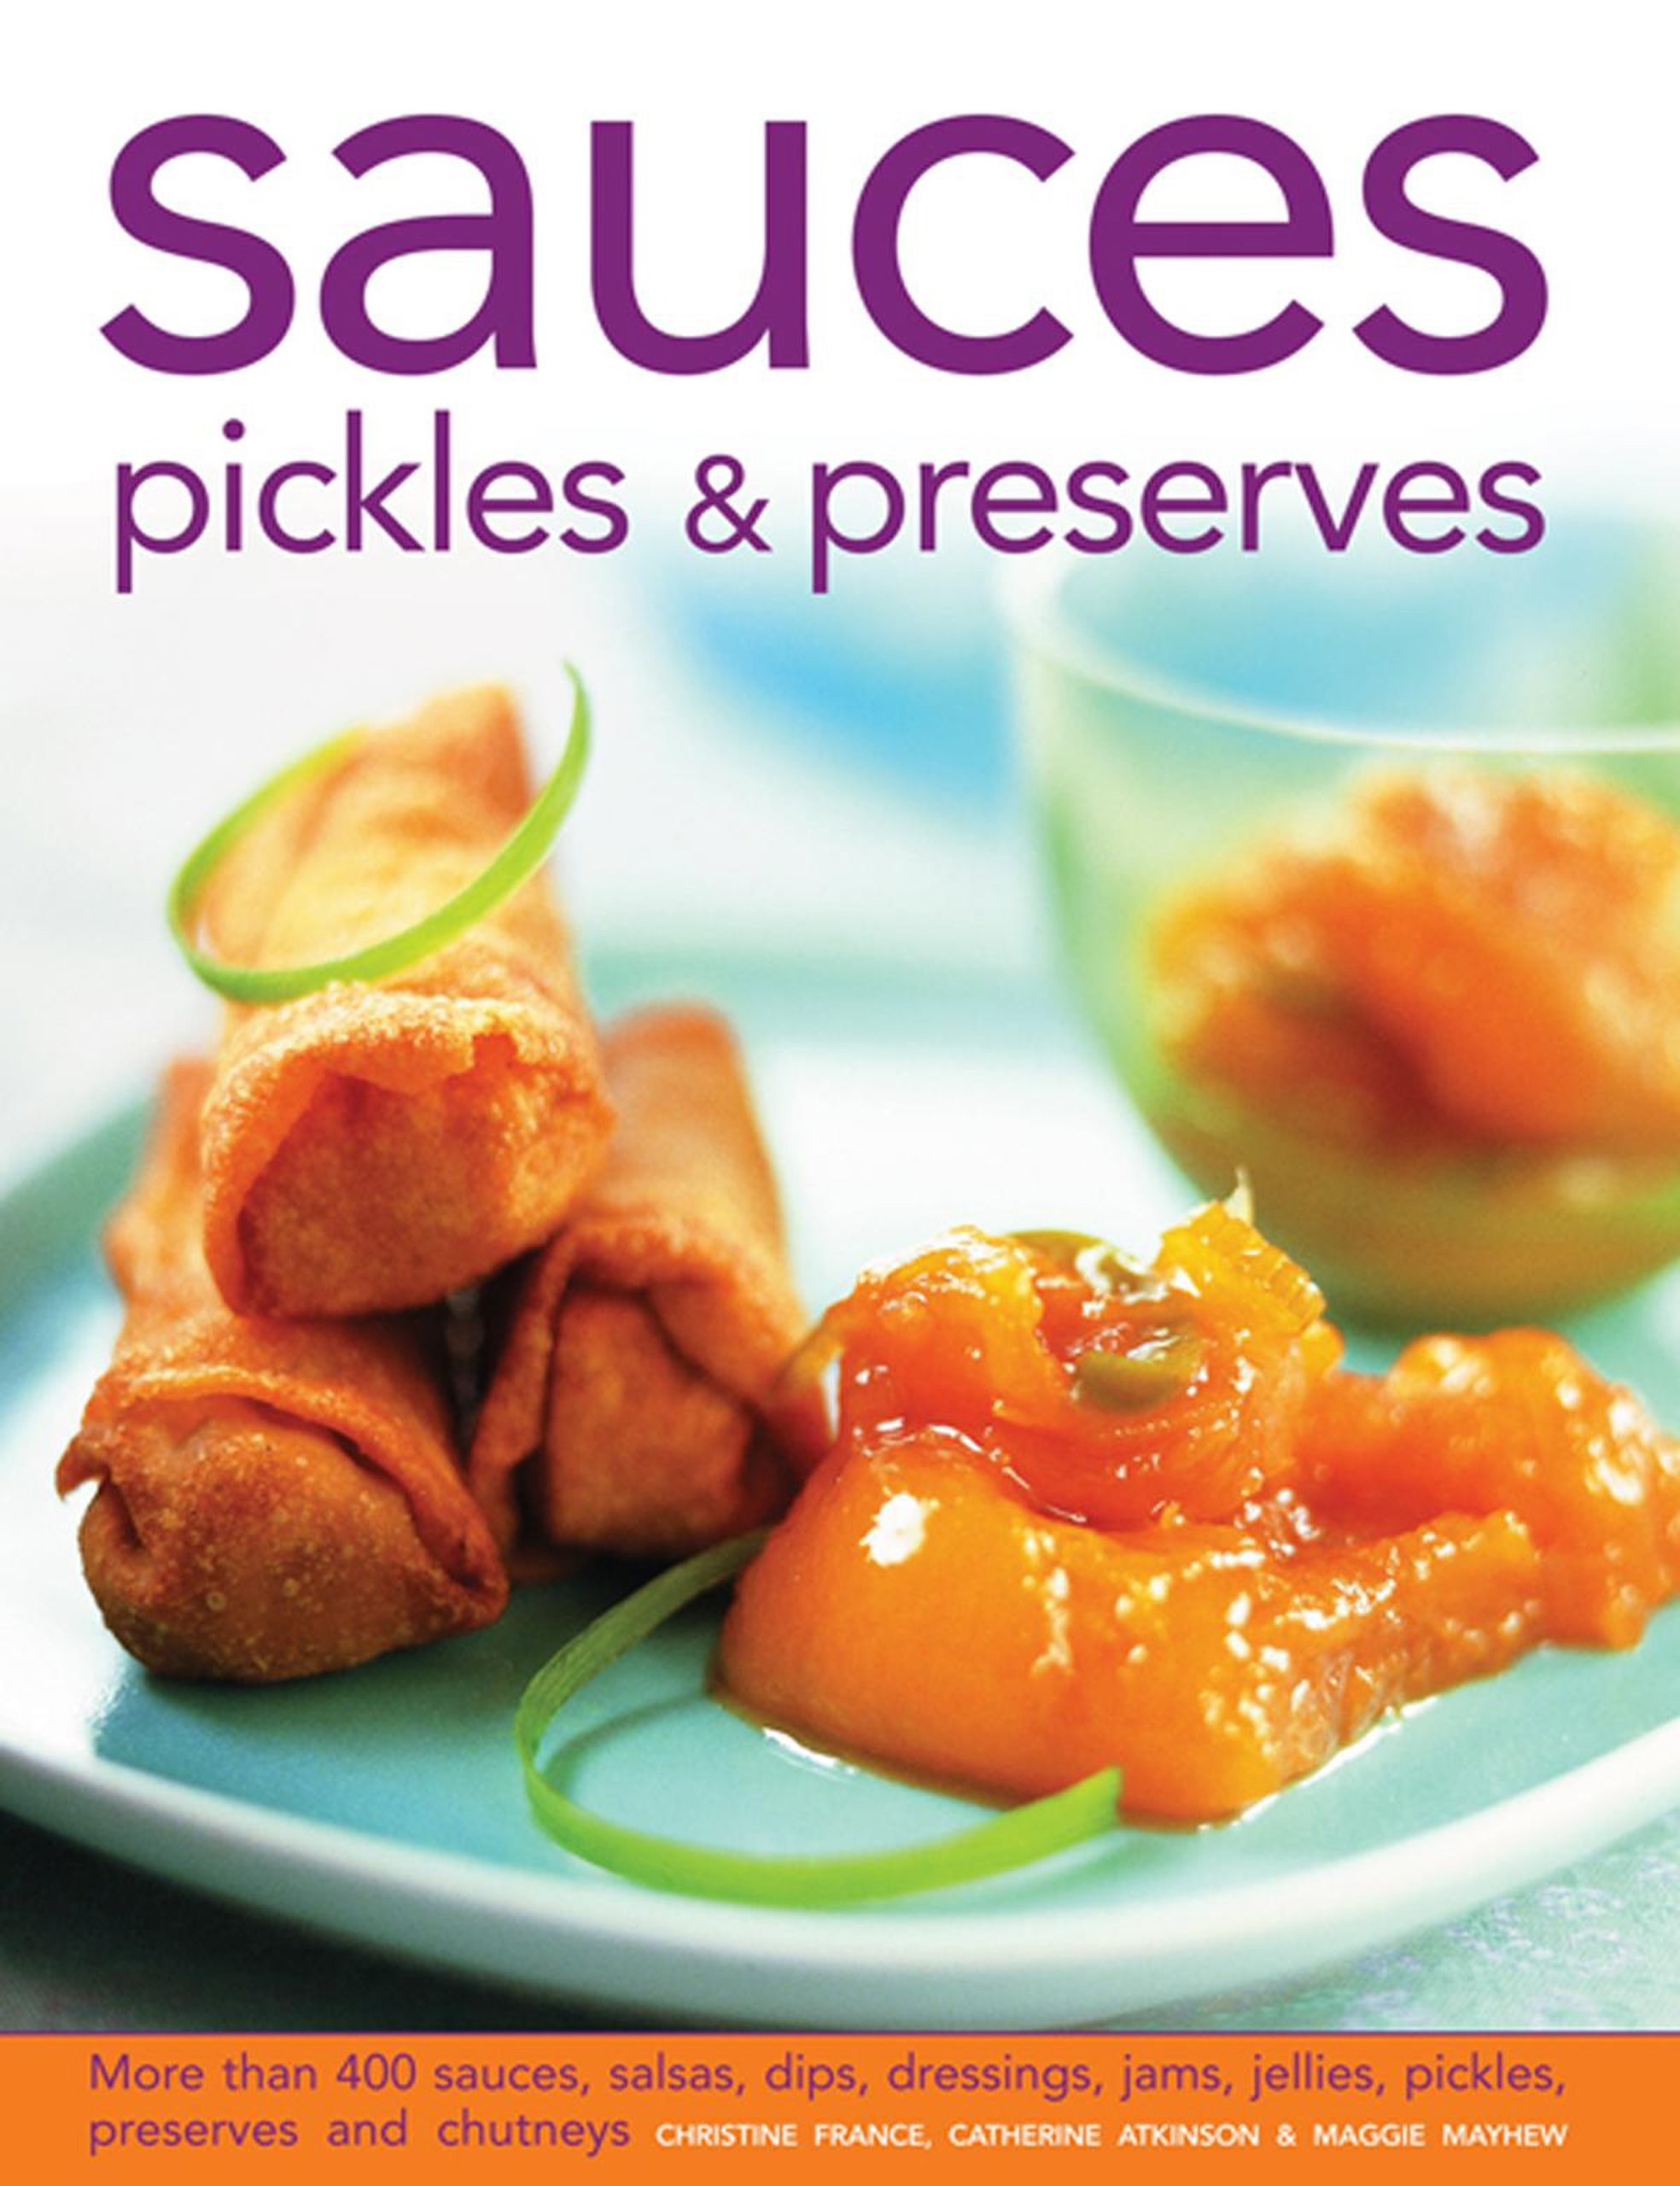 Sauces, Pickles & Preserves: More than 400 Sauces, Salsas, Dips, Dressings, Jams, Jellies, Pickles, Preserves and Chutneys: Christine France, ...